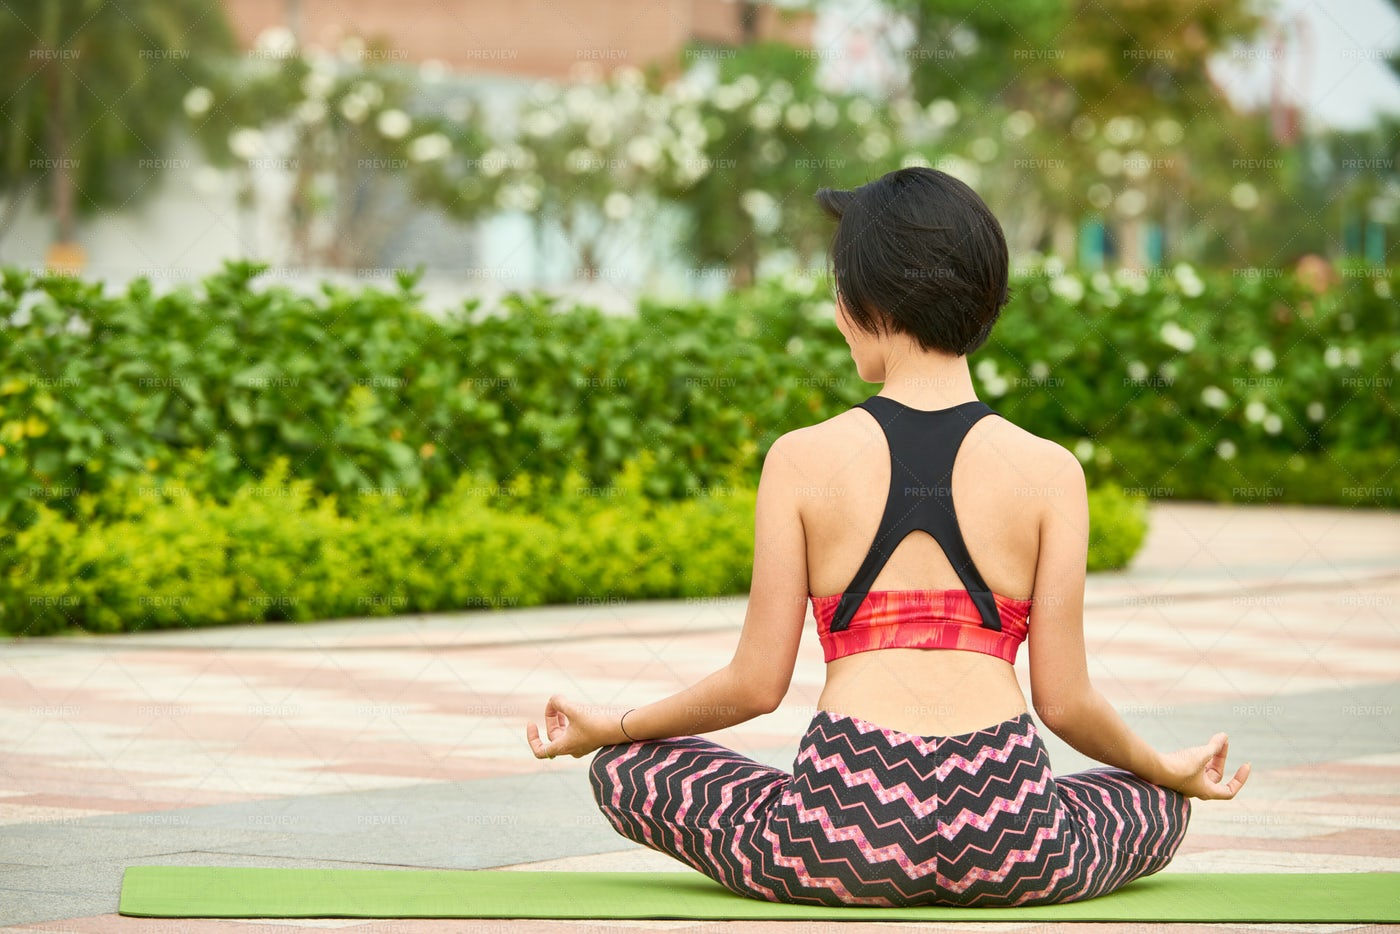 Fit Woman Training Yoga Outdoors: Stock Photos